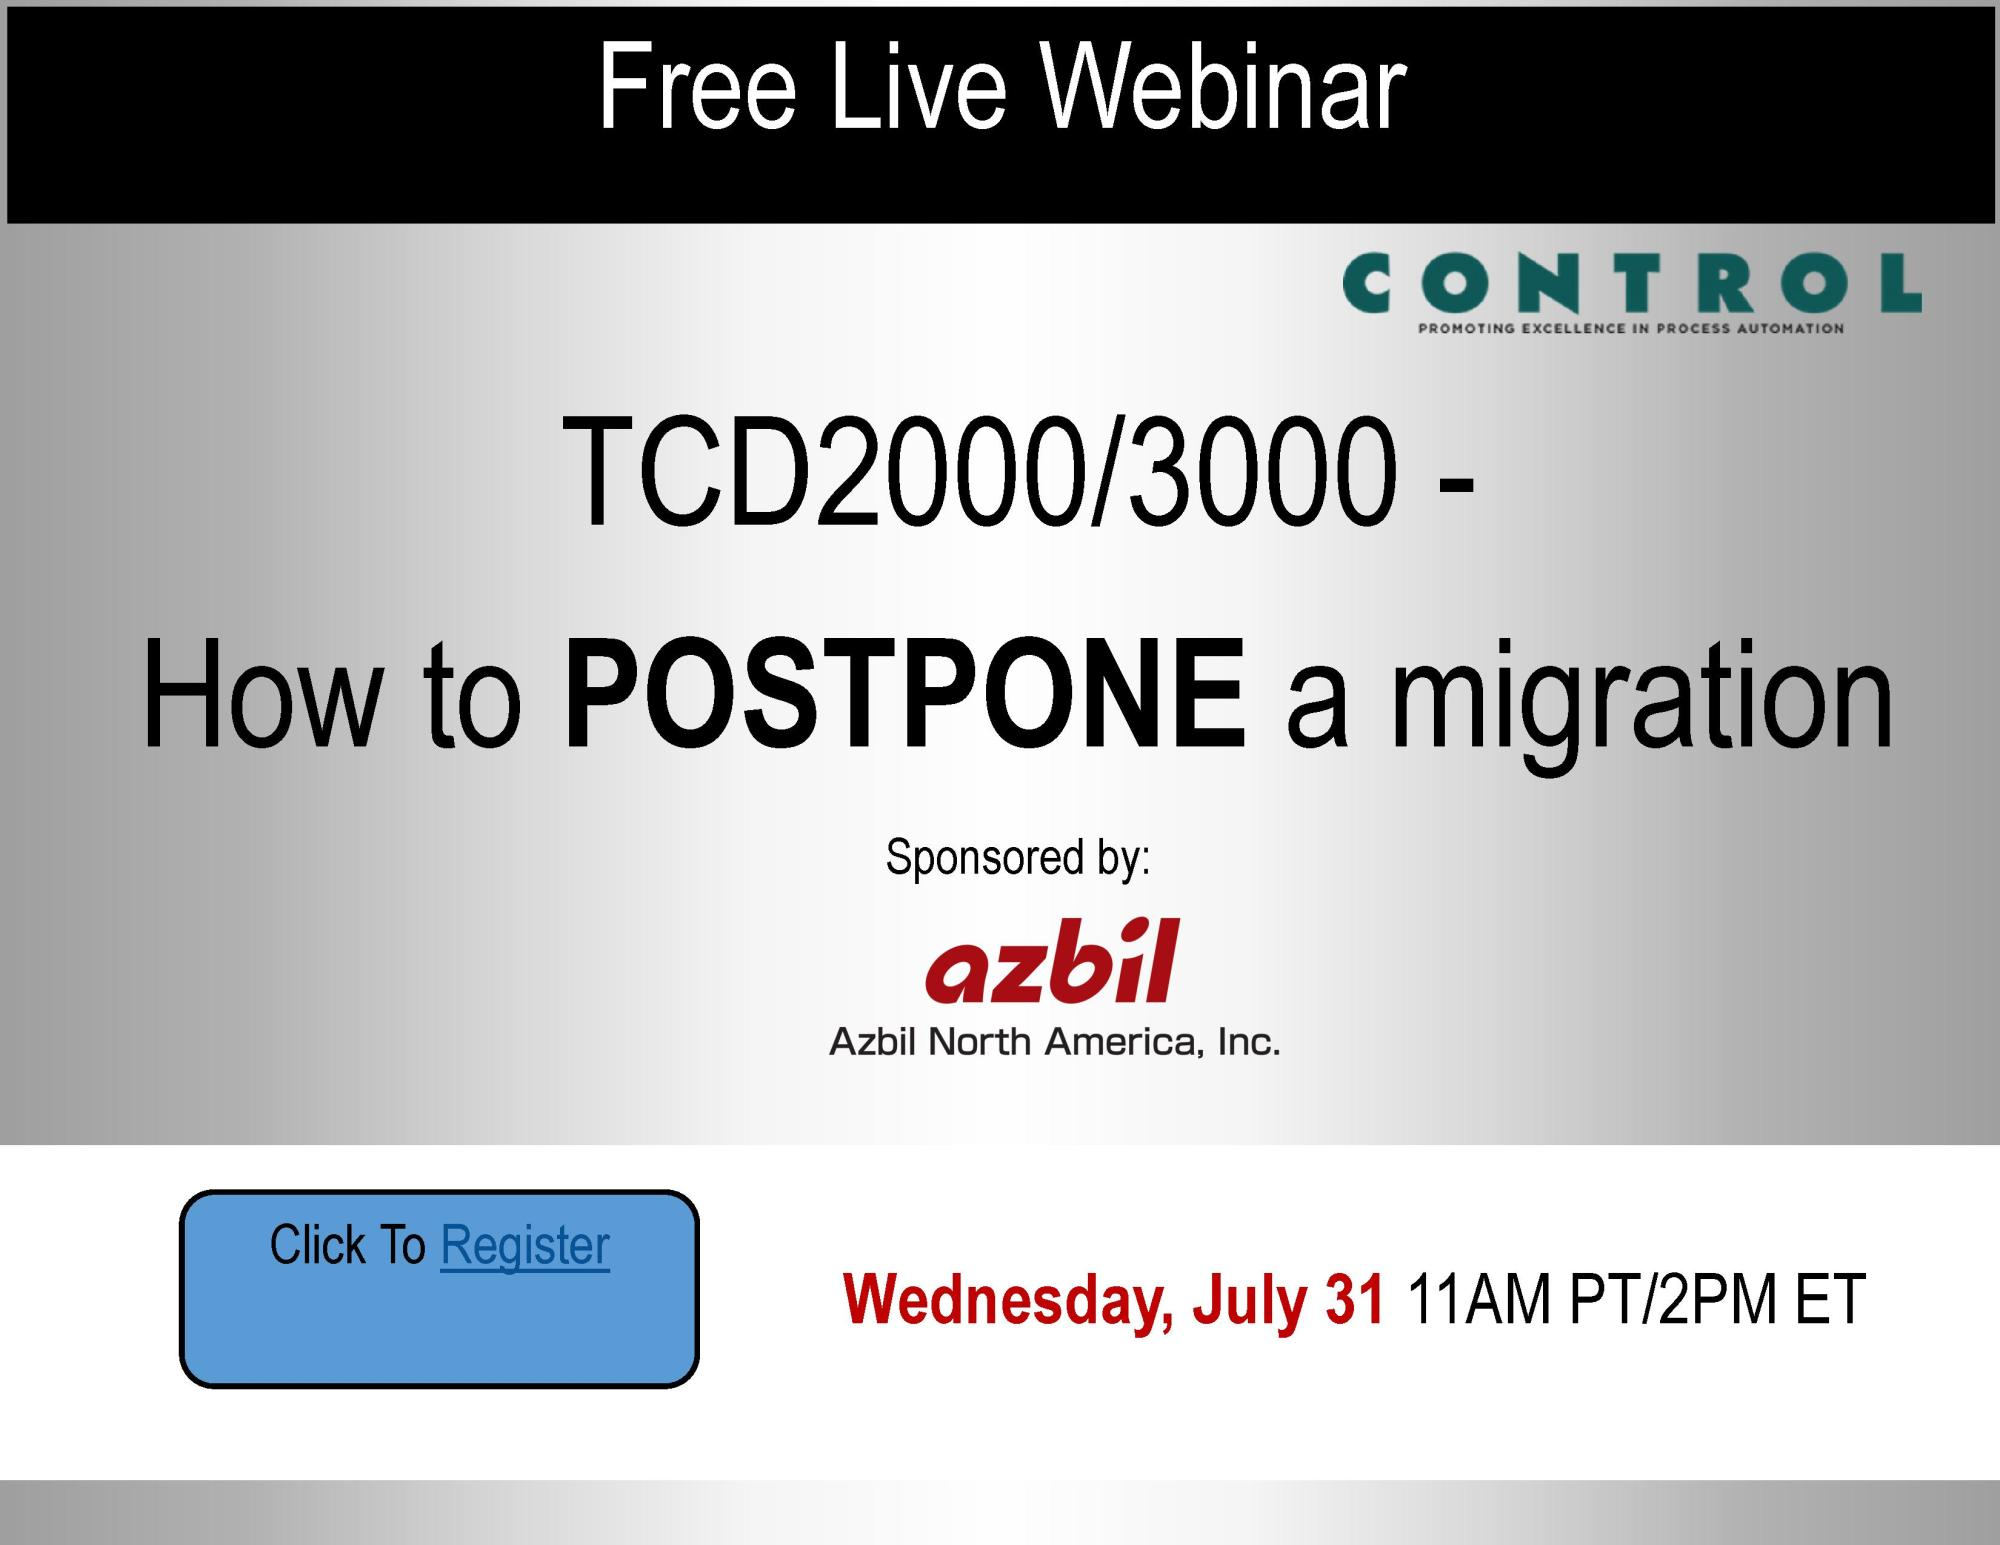 hight resolution of free live webinar tcd2000 3000 how to postpone a migration sponsored by azbil north america inc